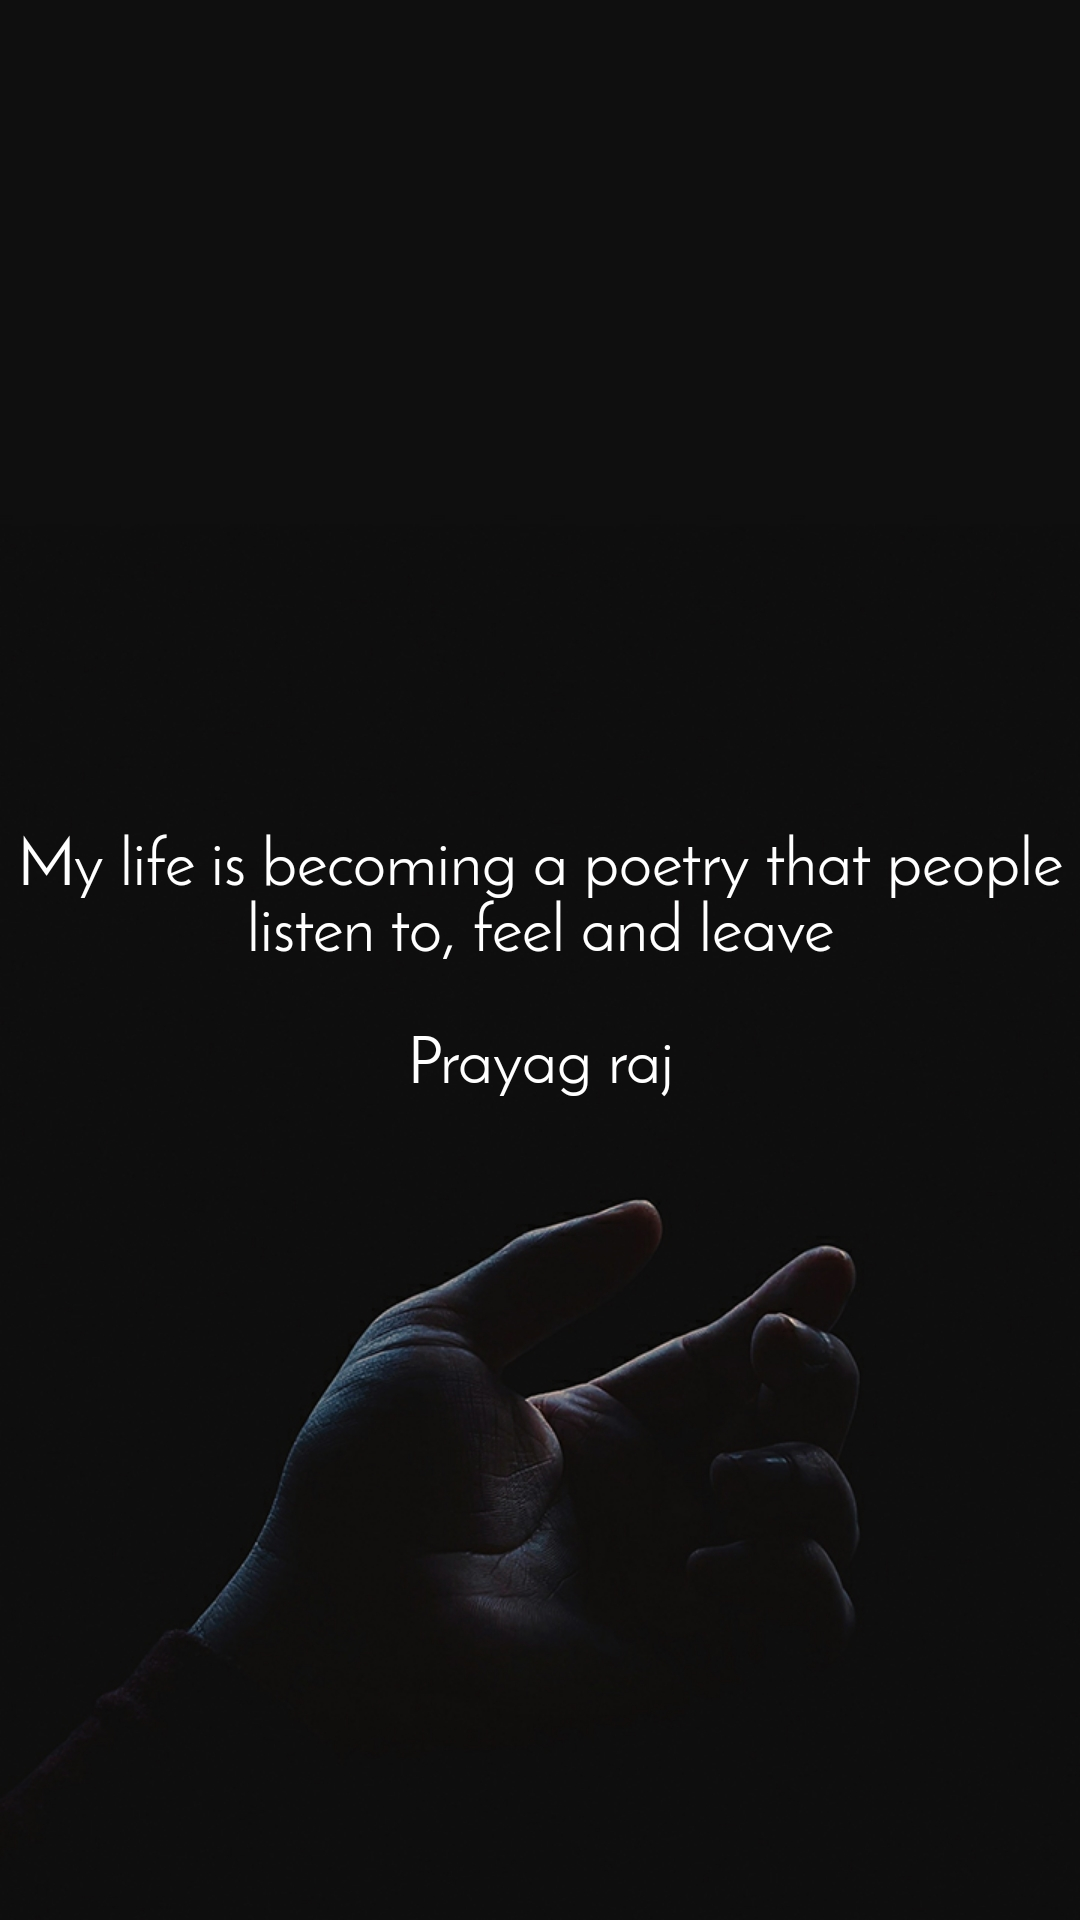 My life is becoming a poetry that people listen to, feel and leave  Prayag raj